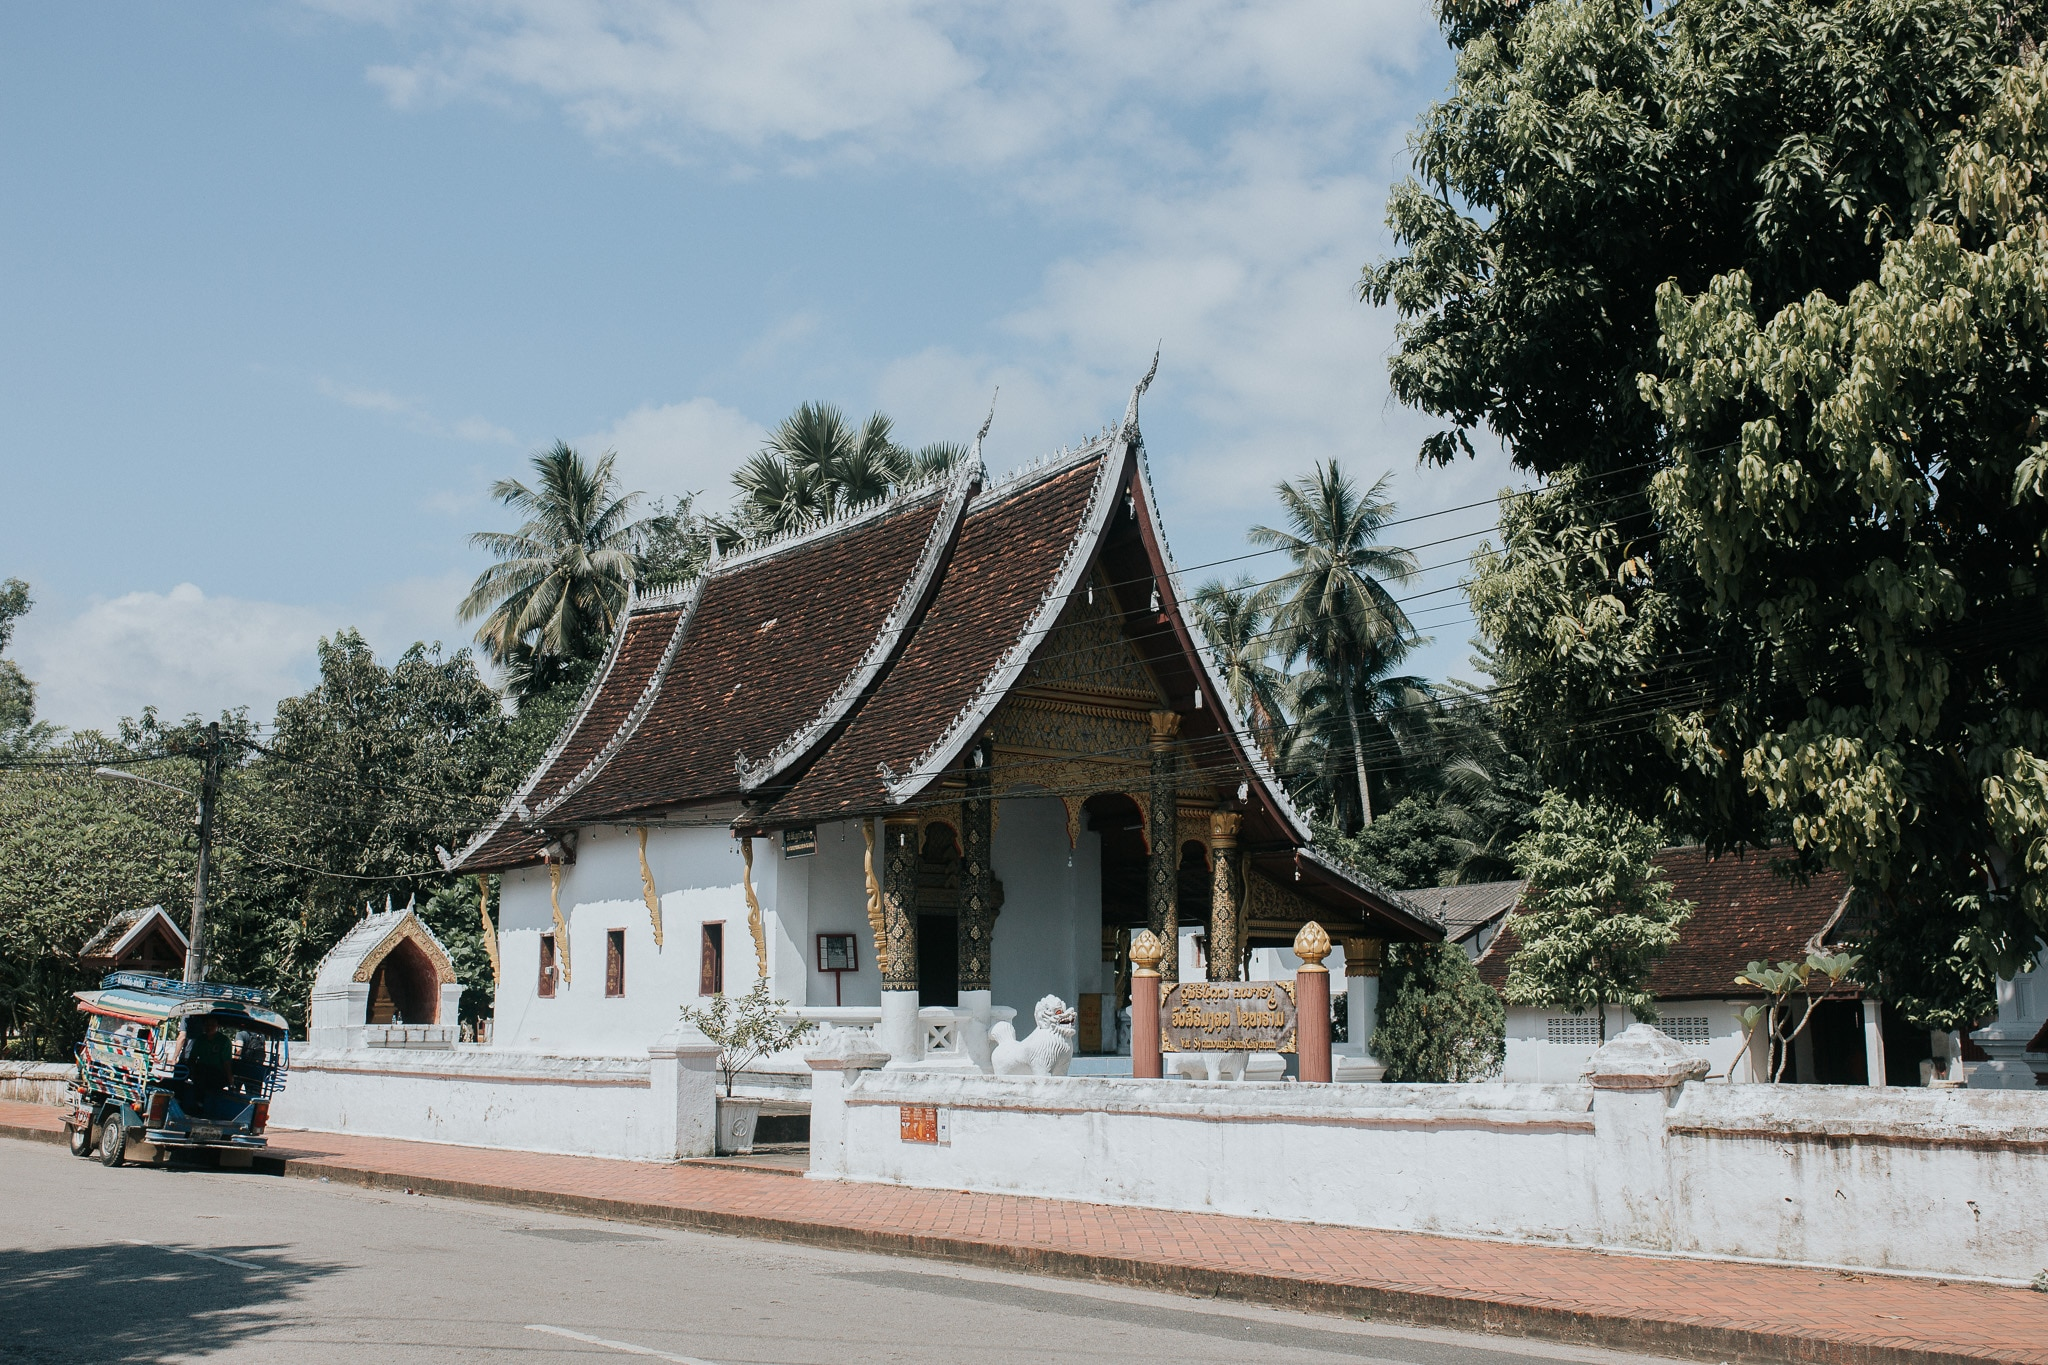 One week in Laos - Luang Prabang - Buddhist temple in Sakkaline road